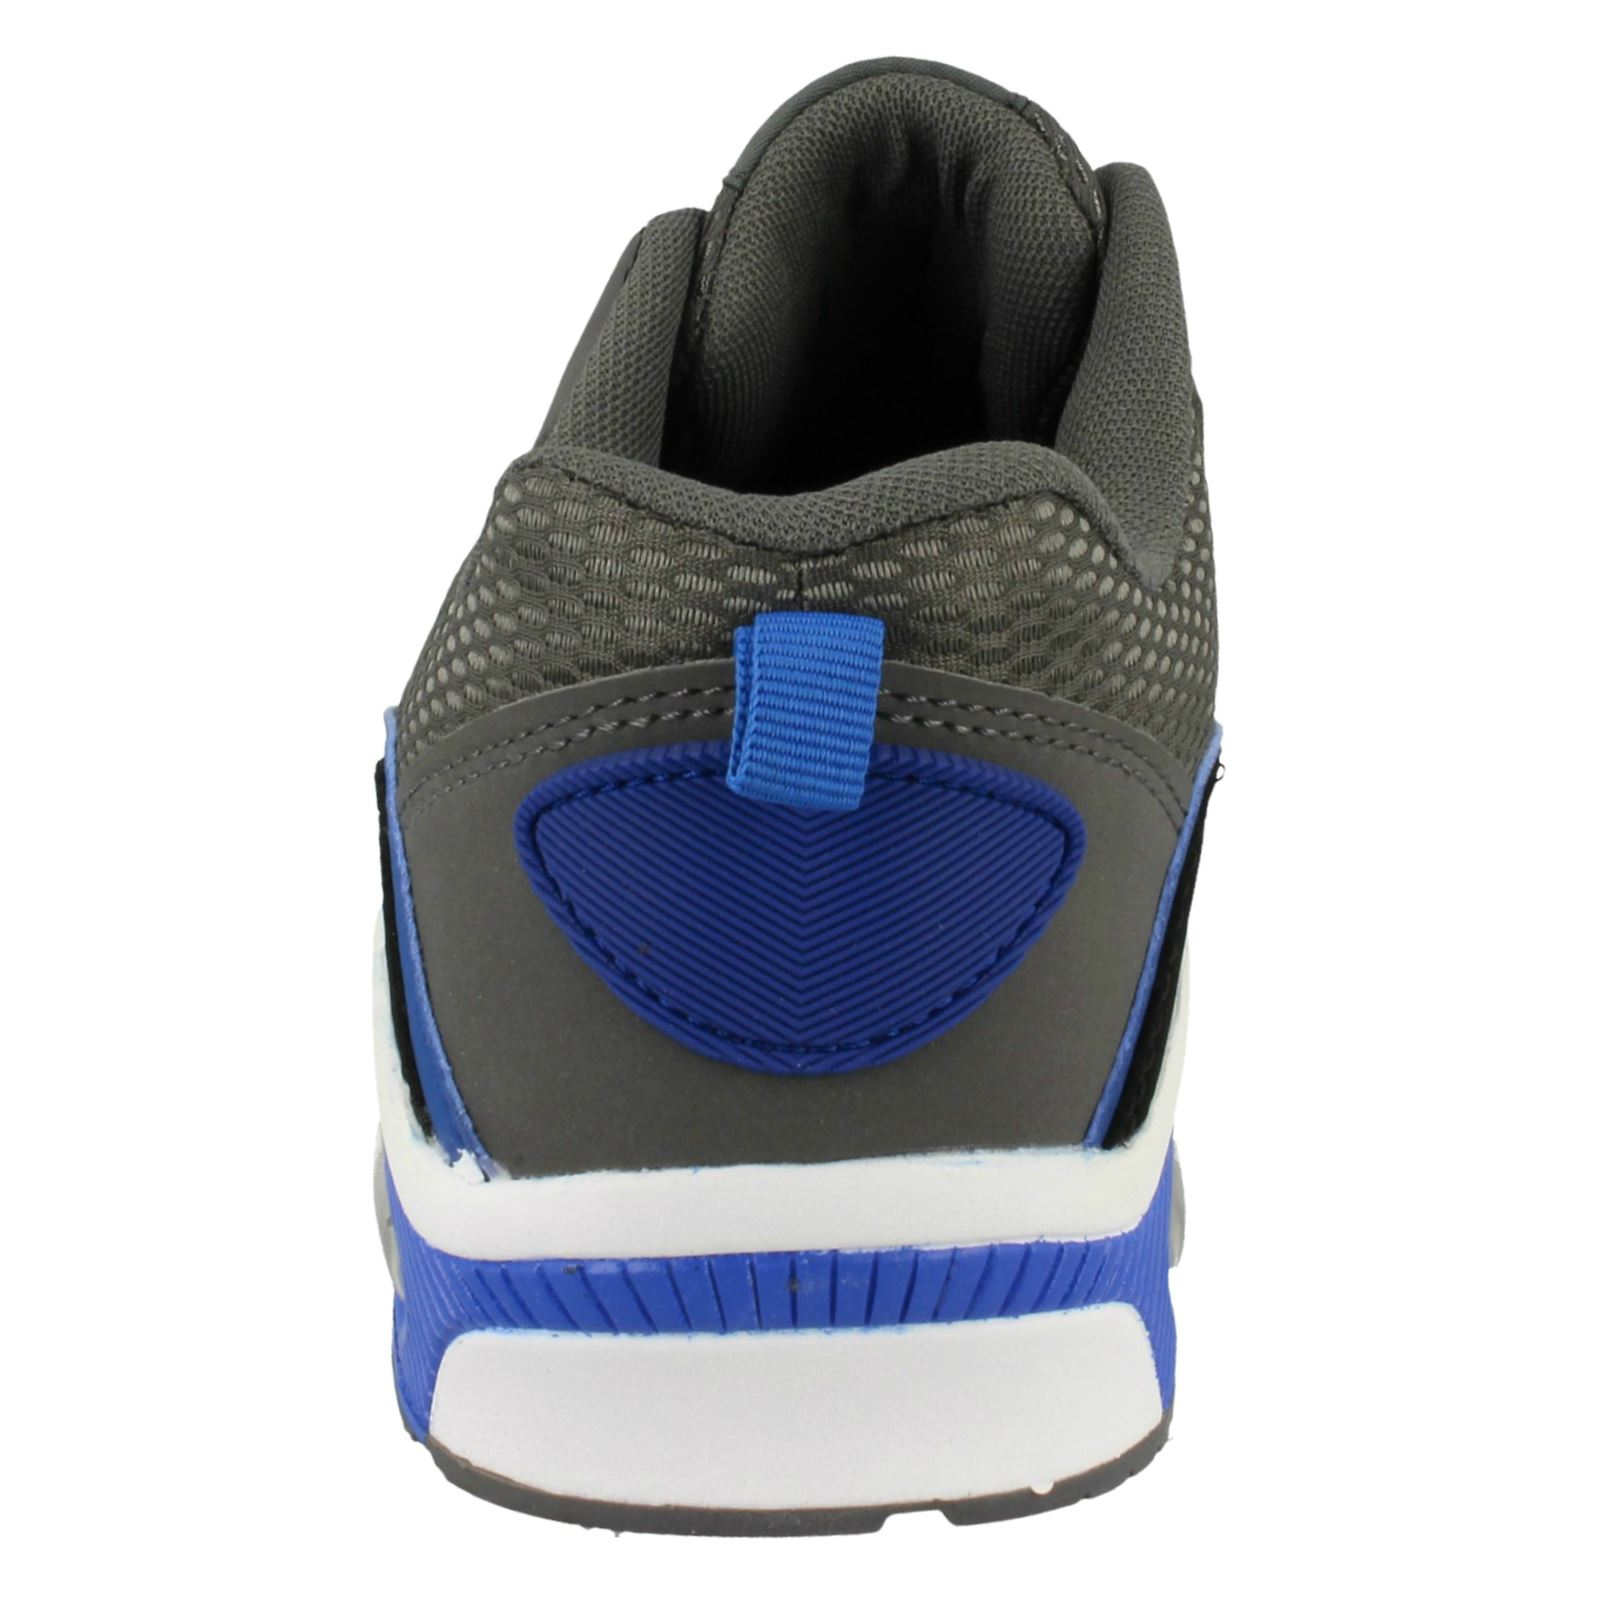 Mens Airtech Casual Lace Up Trainers Legacy